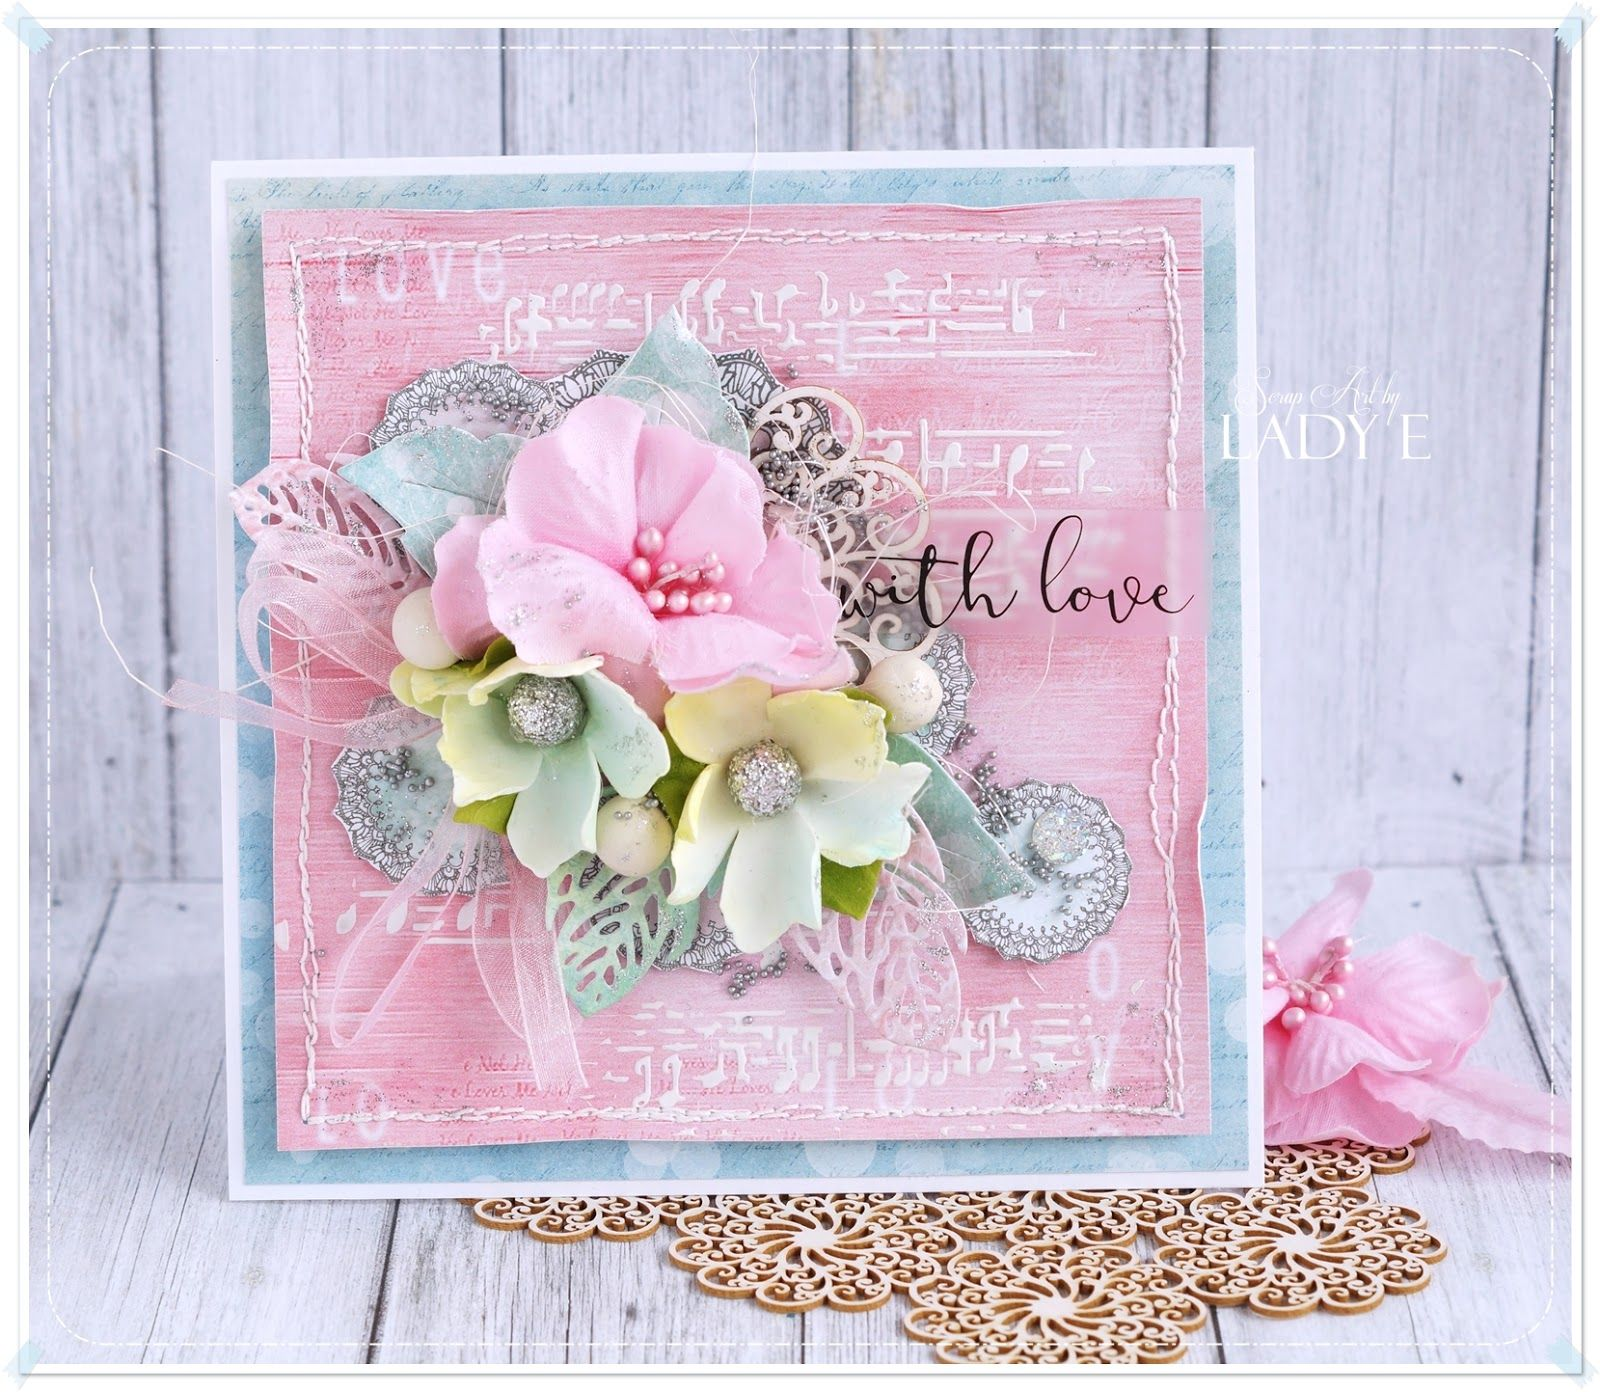 Scrapbooking handmade cards and papercrafts by lady e vintage